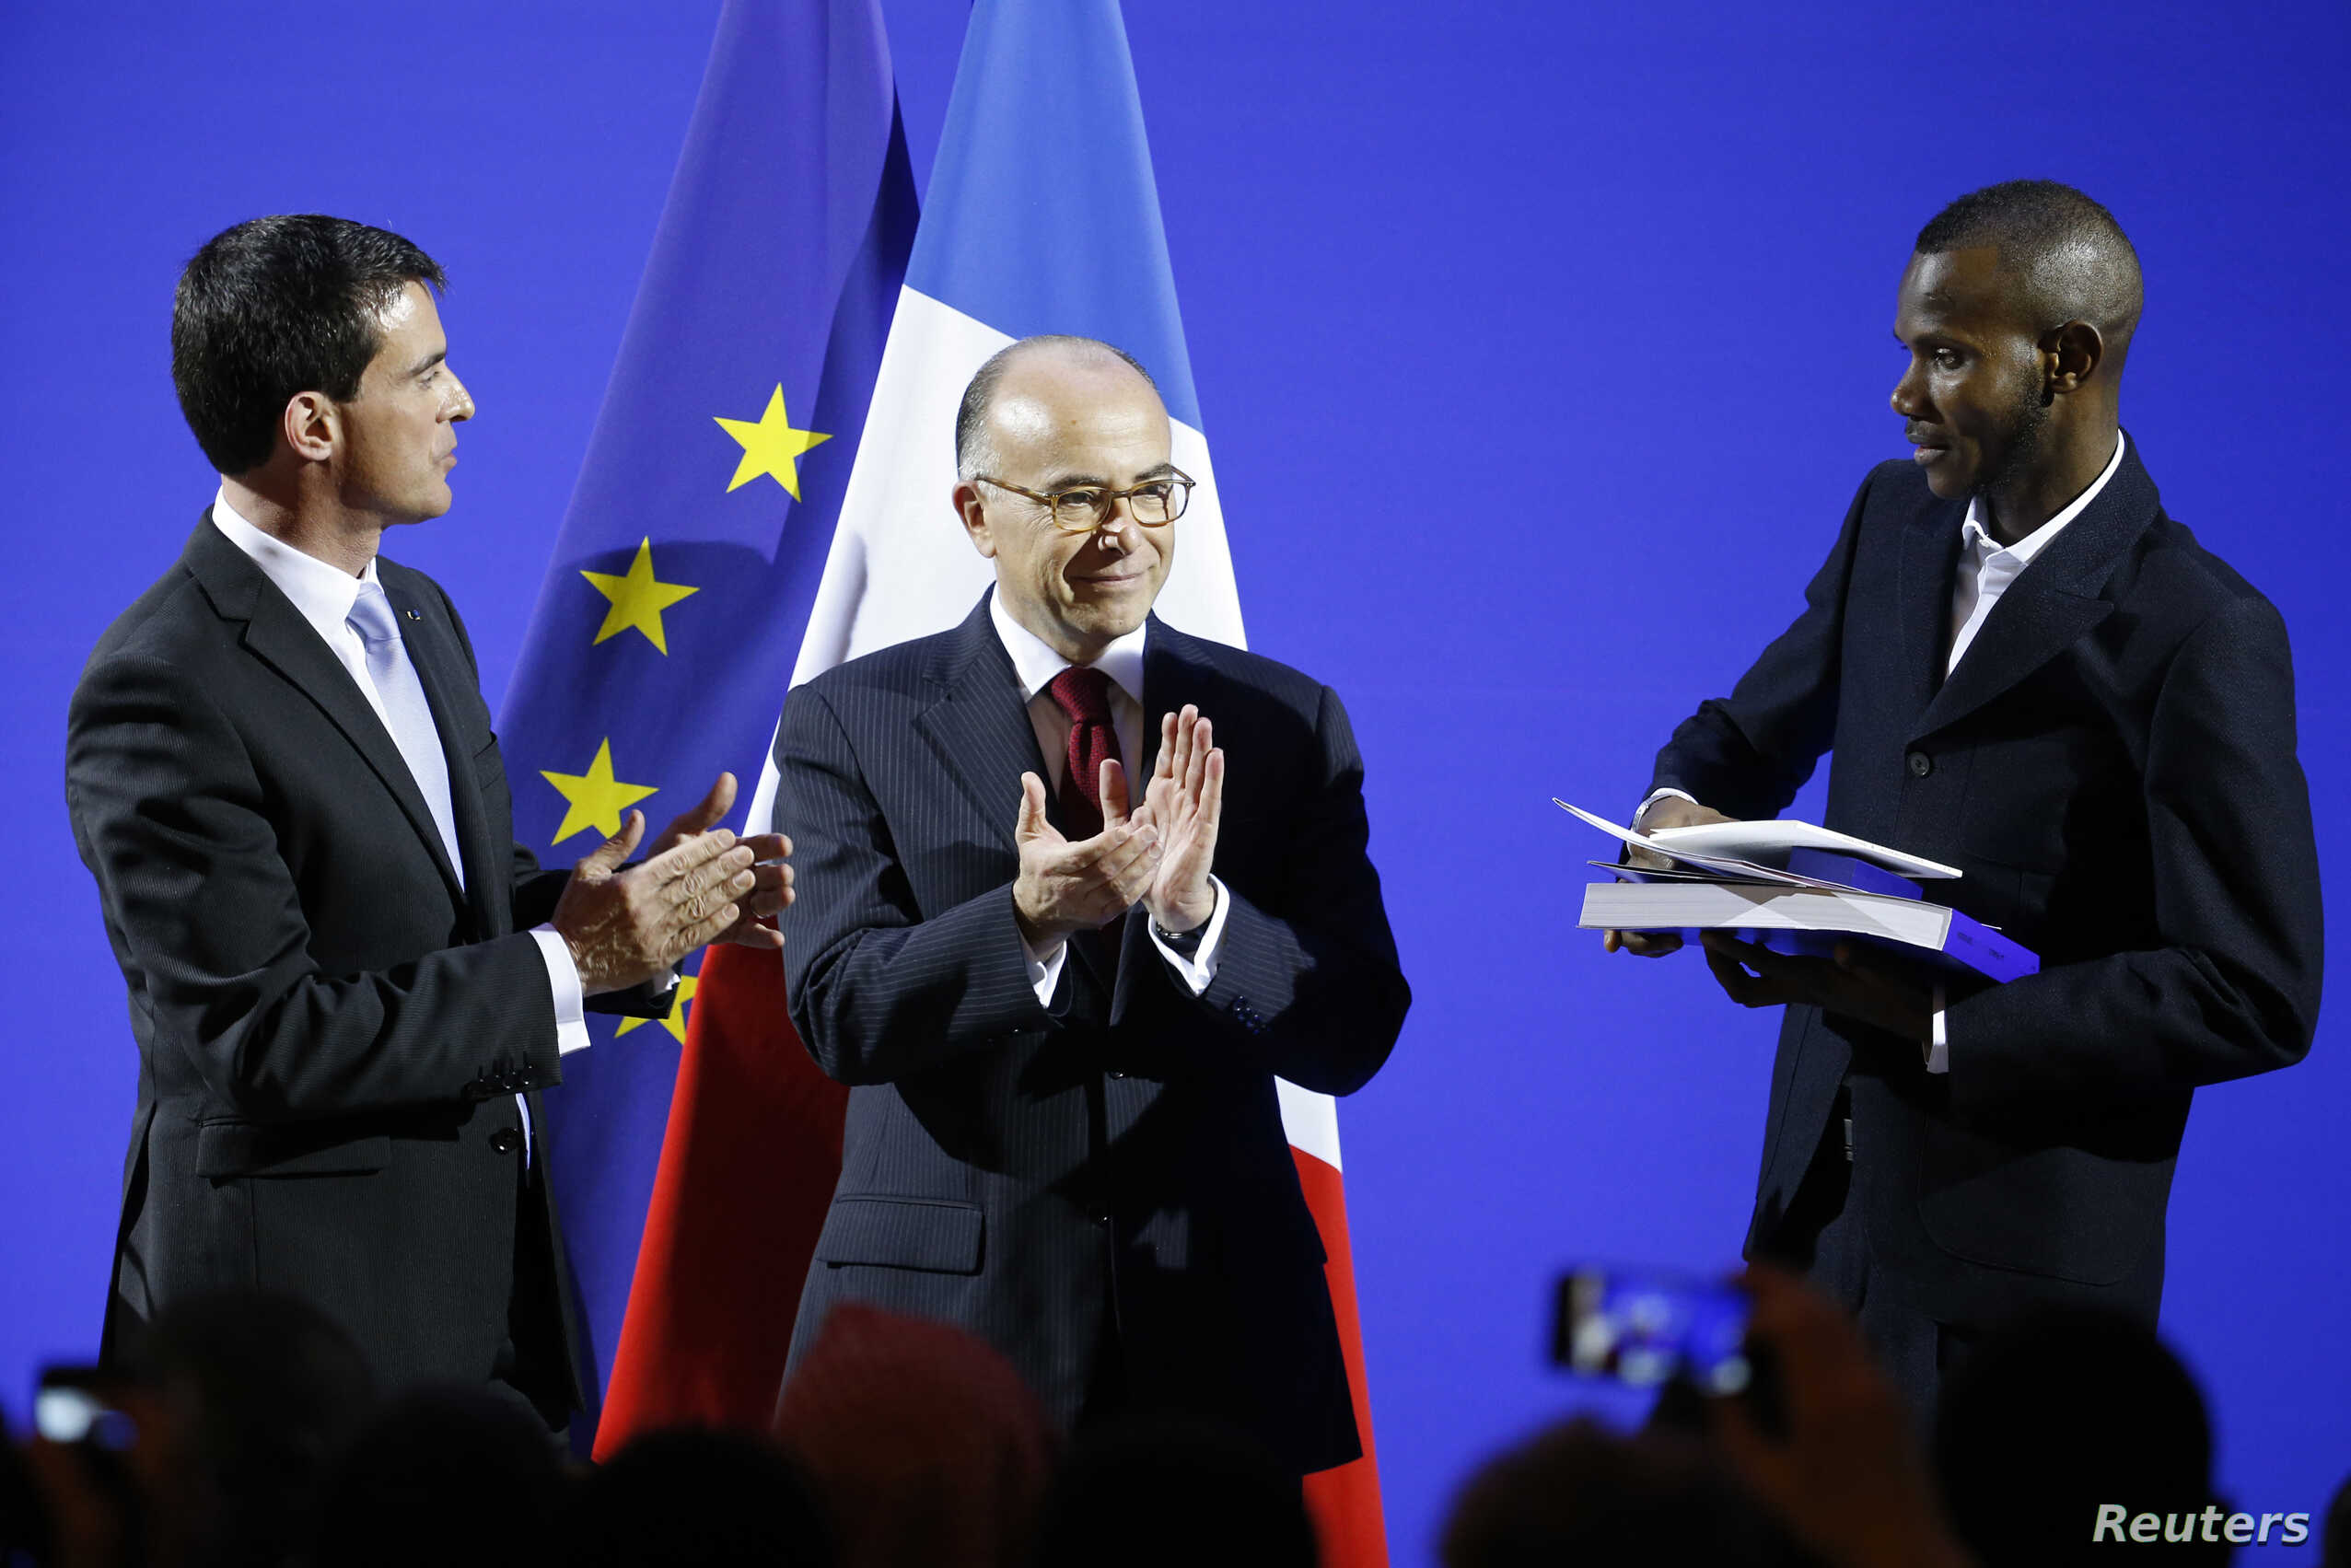 French Prime Minister Manuel Valls and Interior Minister Bernard Cazeneuve applaud as Lassana Bathily, 24, holds his citizenship papers during a ceremony at the Interior Ministry in Paris, Jan. 20, 2015.